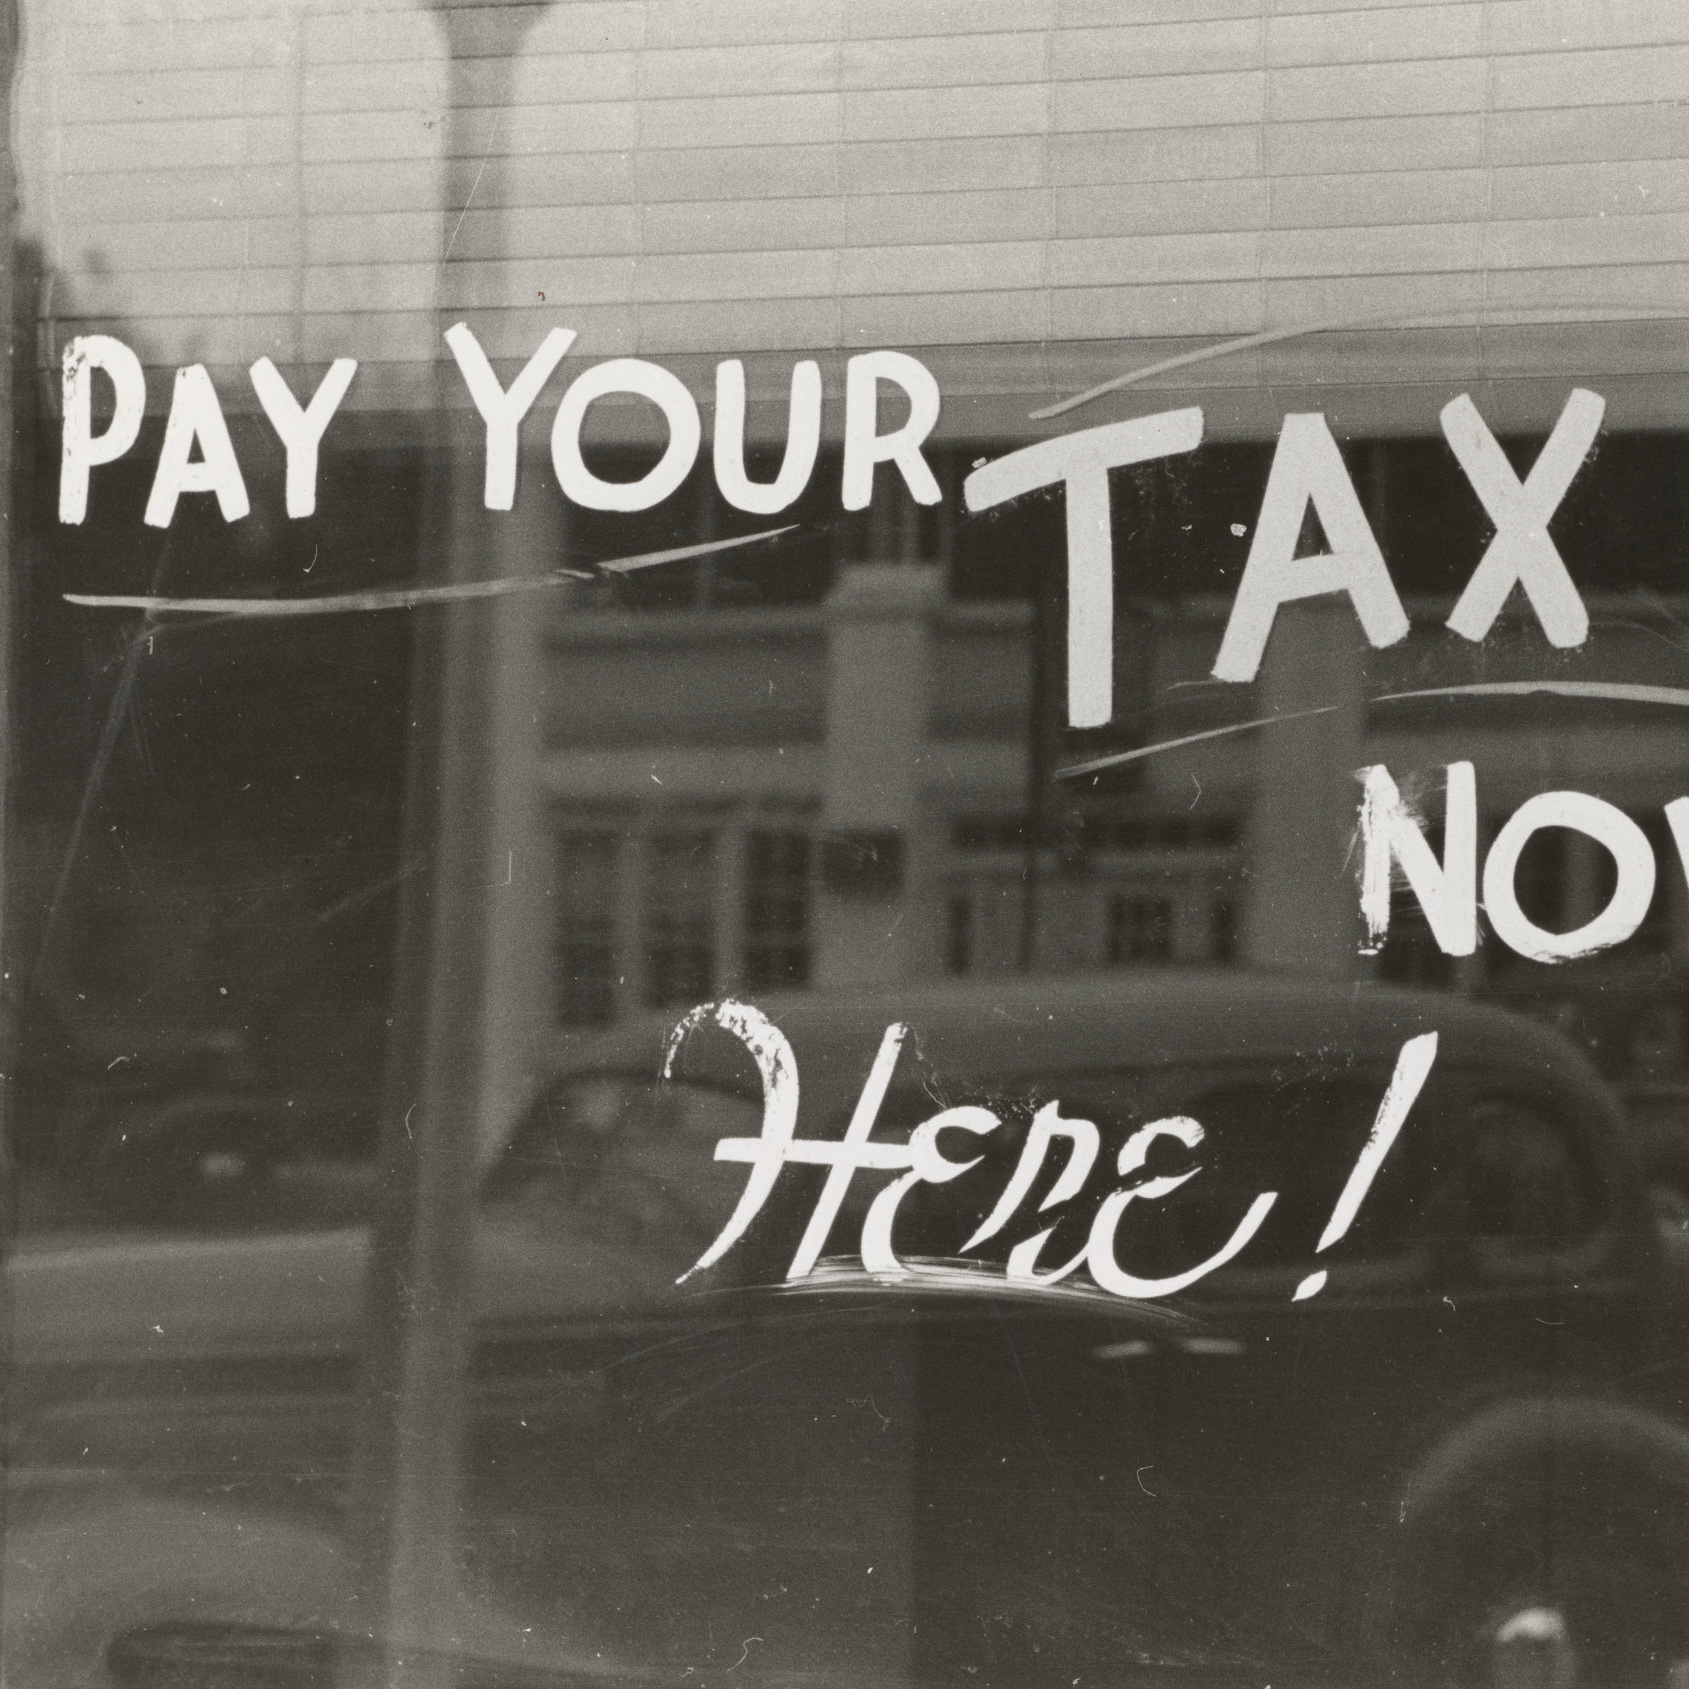 Pay your tax now written on a window